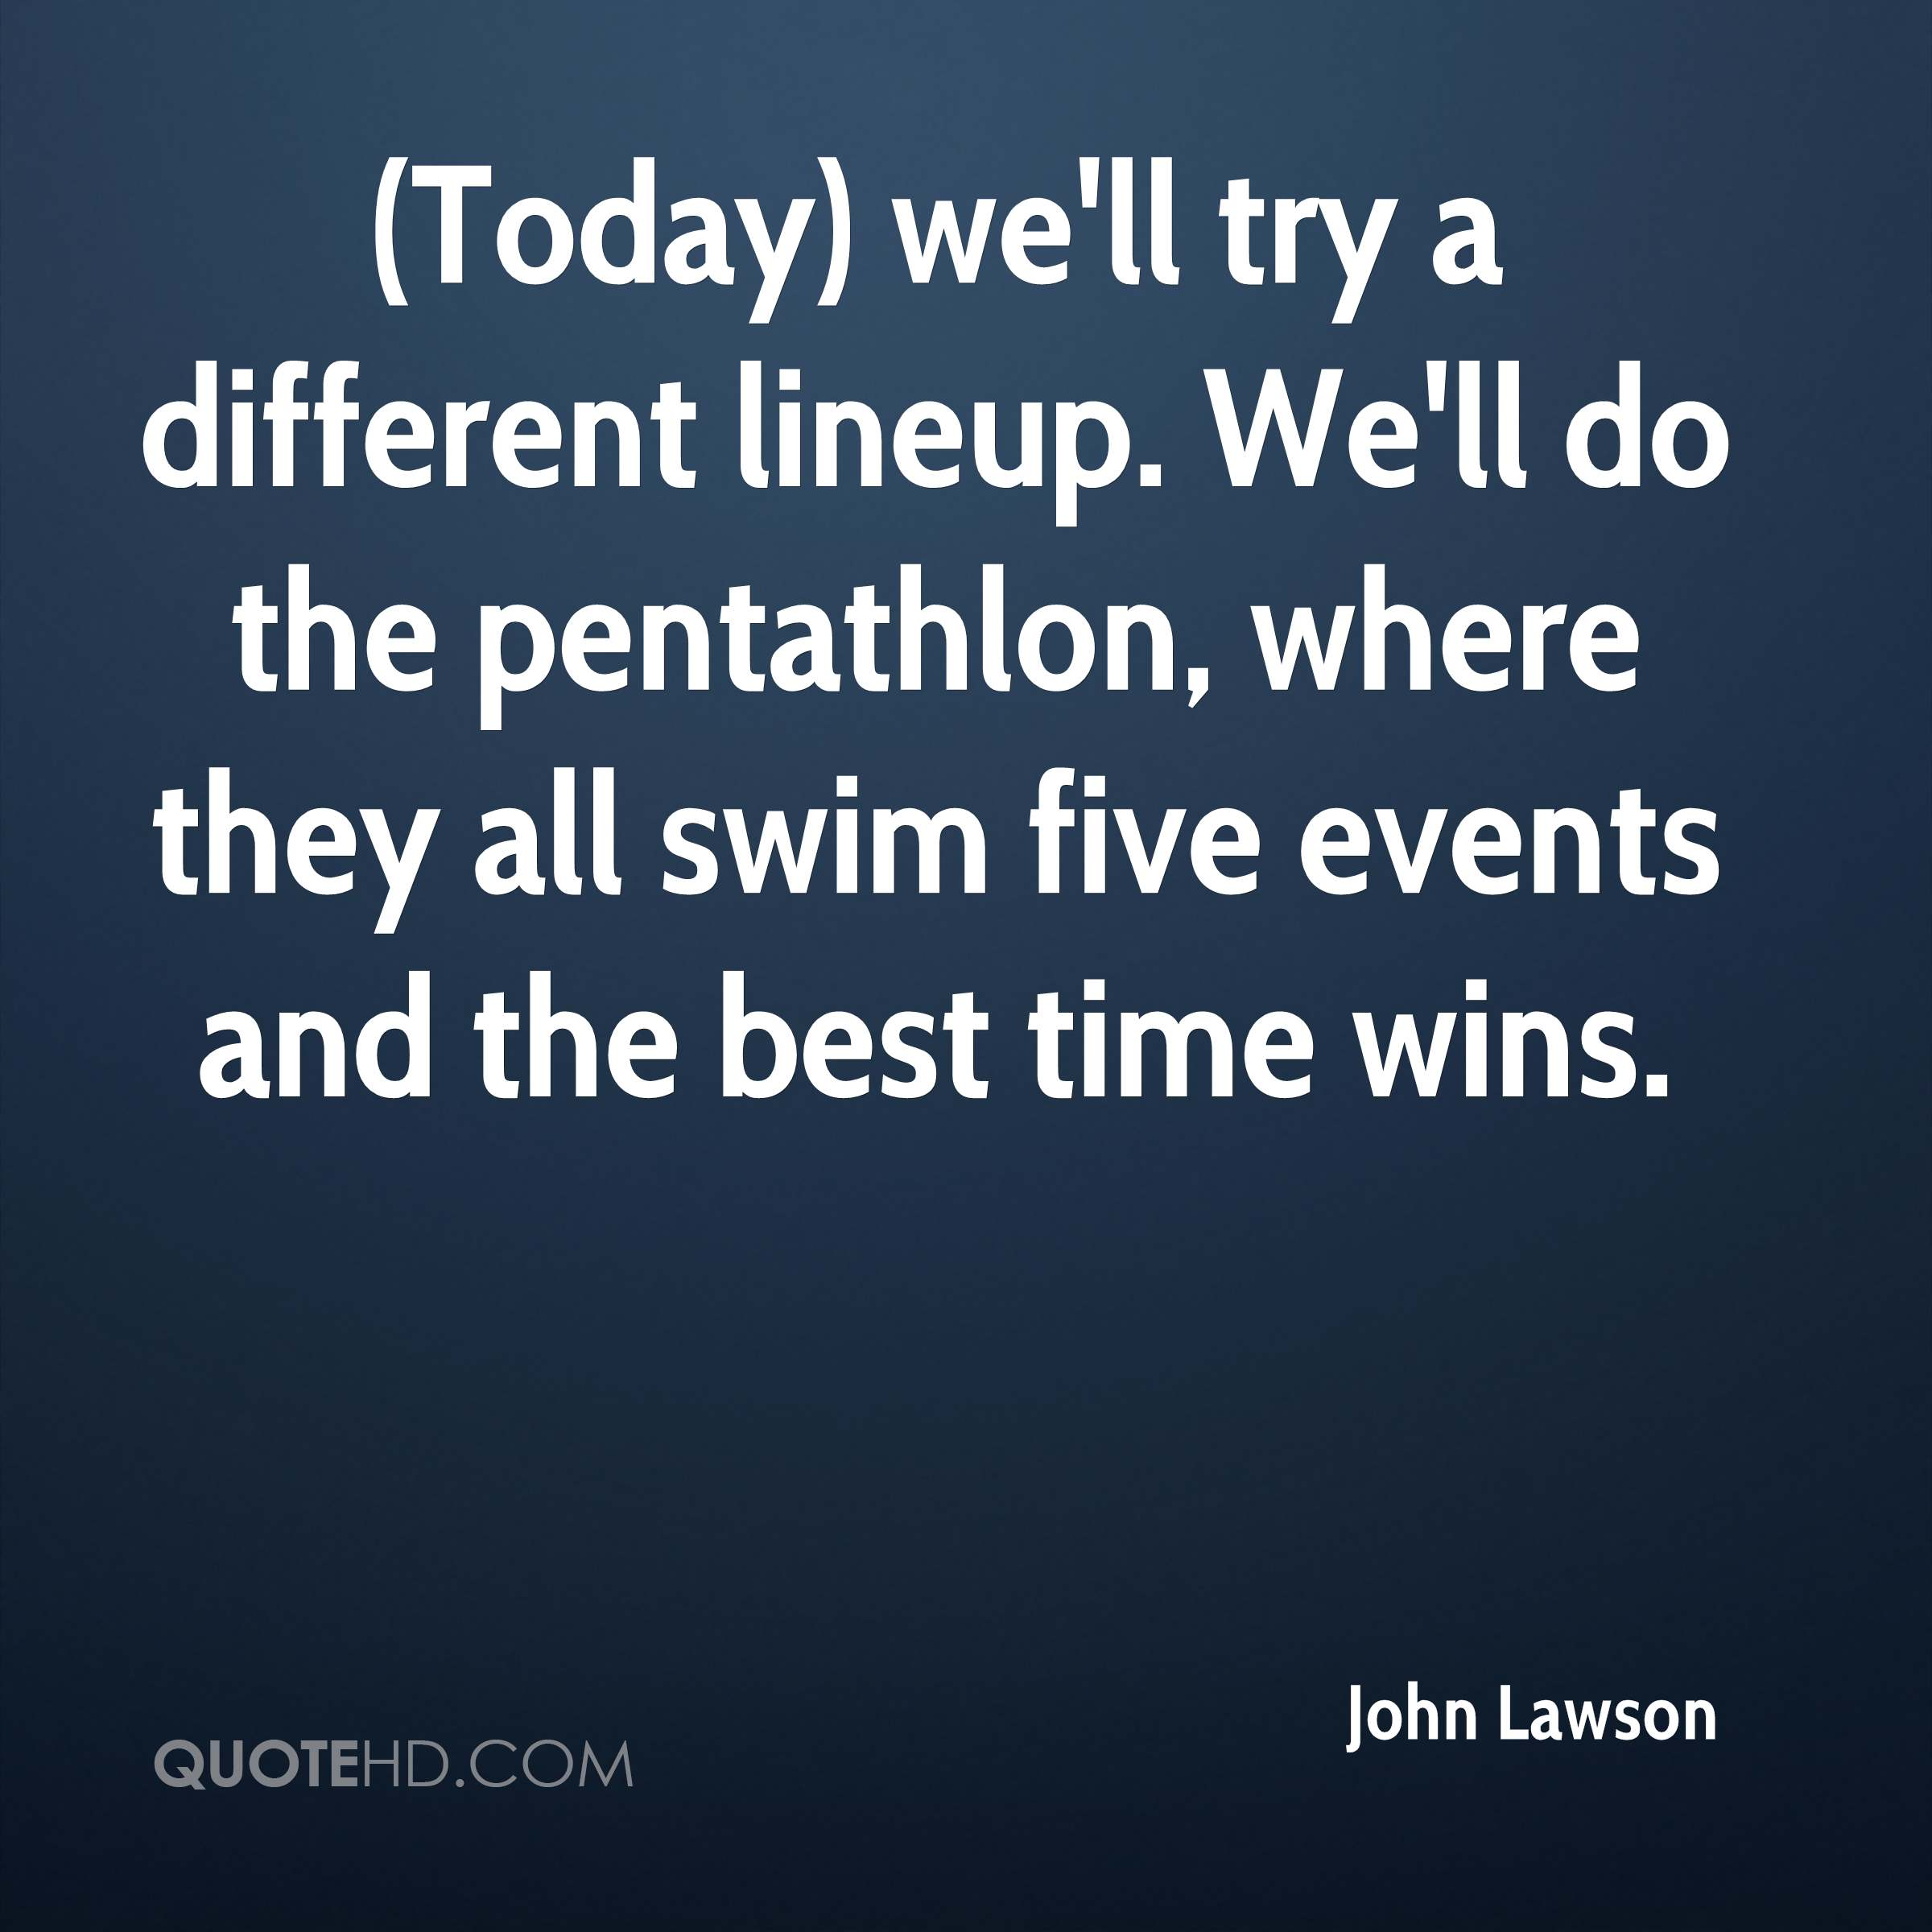 (Today) we'll try a different lineup. We'll do the pentathlon, where they all swim five events and the best time wins.